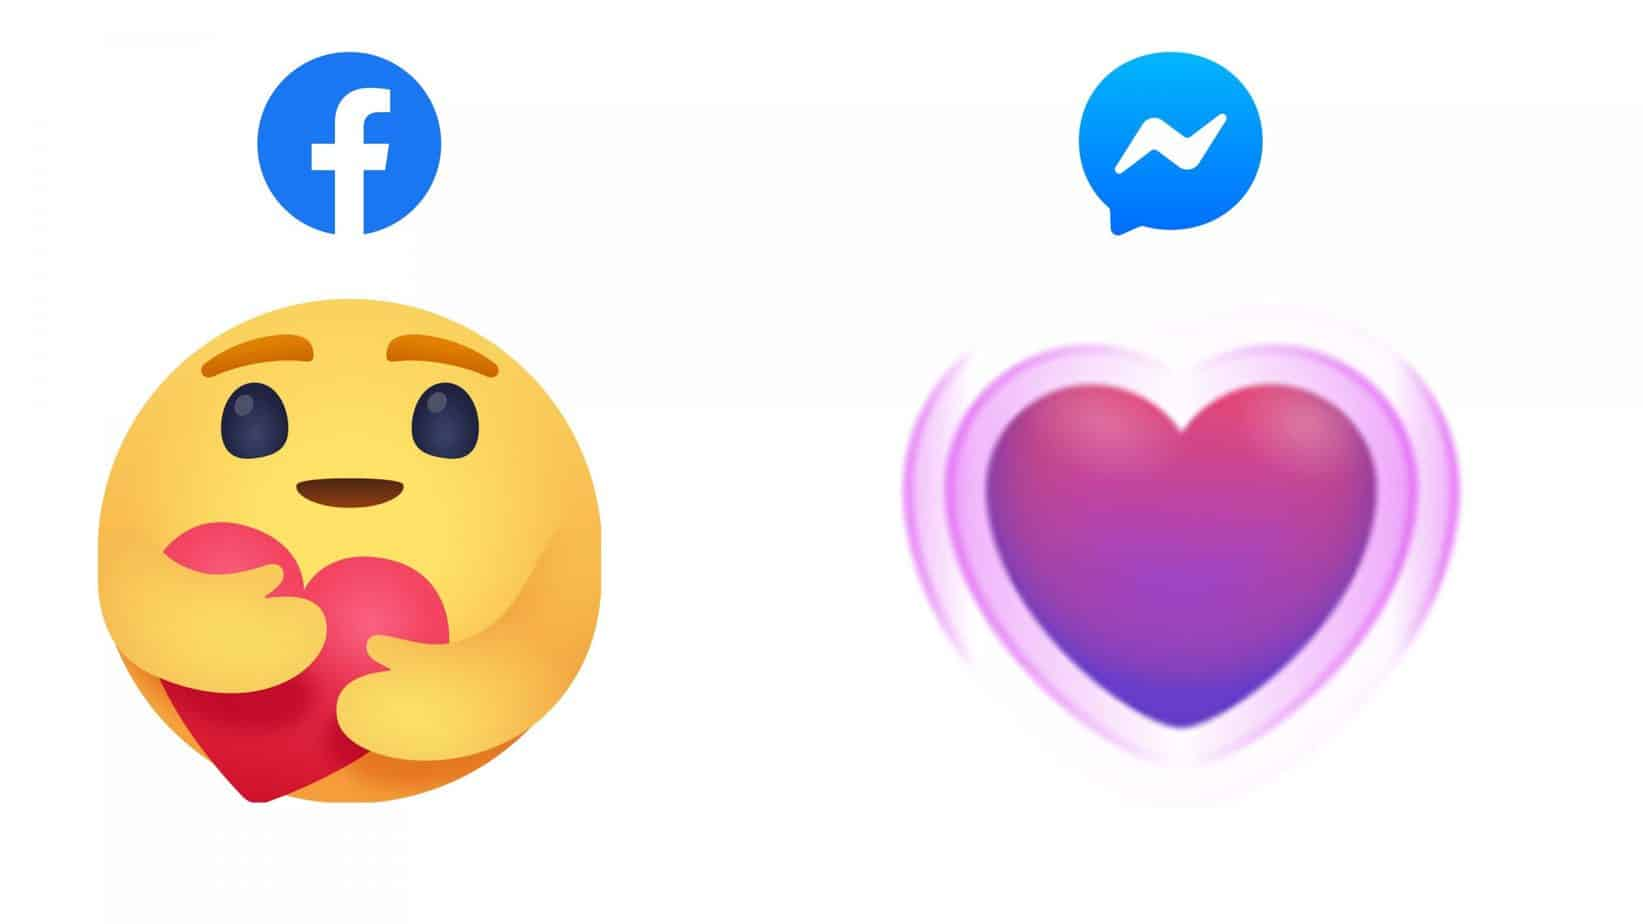 Facebook Introduces A 'Care' Reaction In Difficult Times